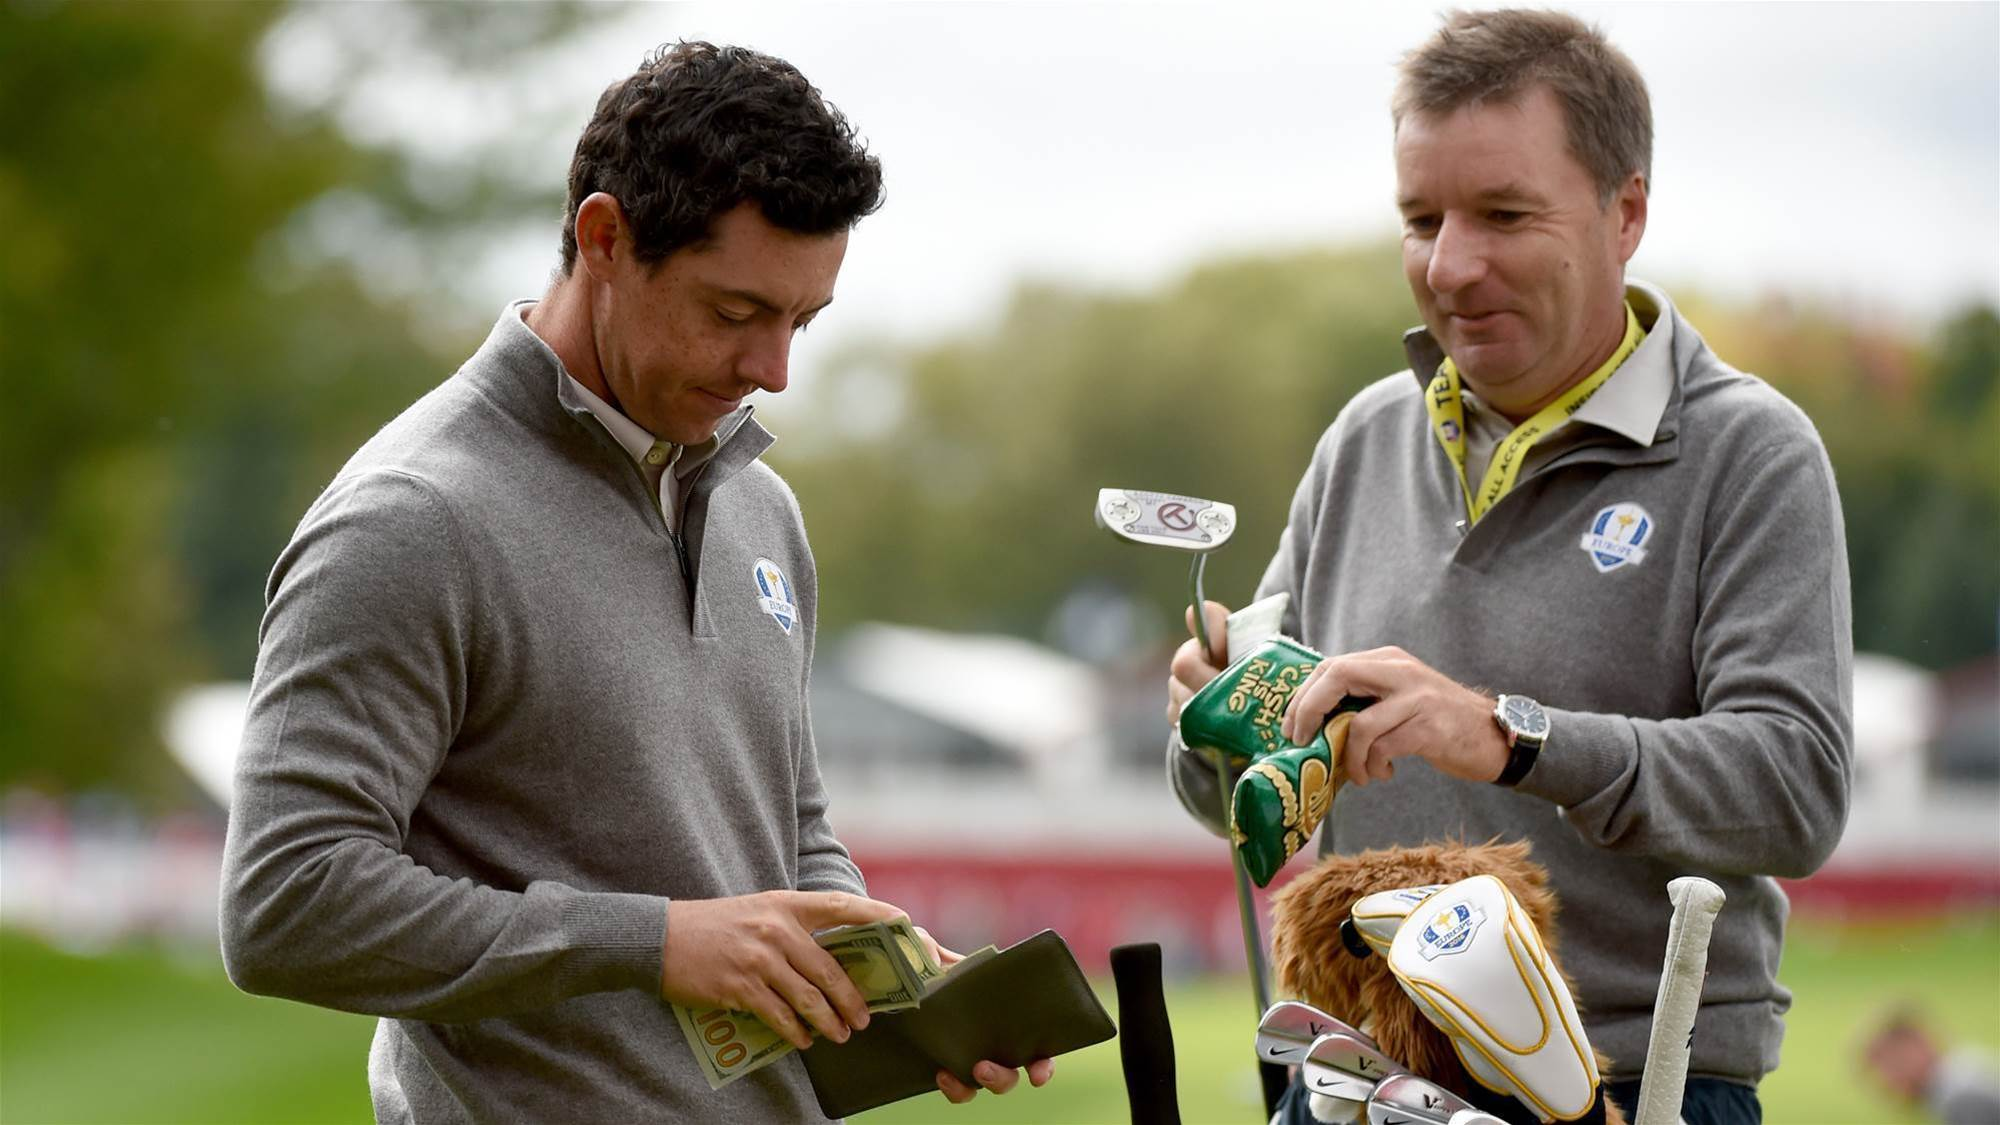 Betting won't harm golf: Rory McIlroy